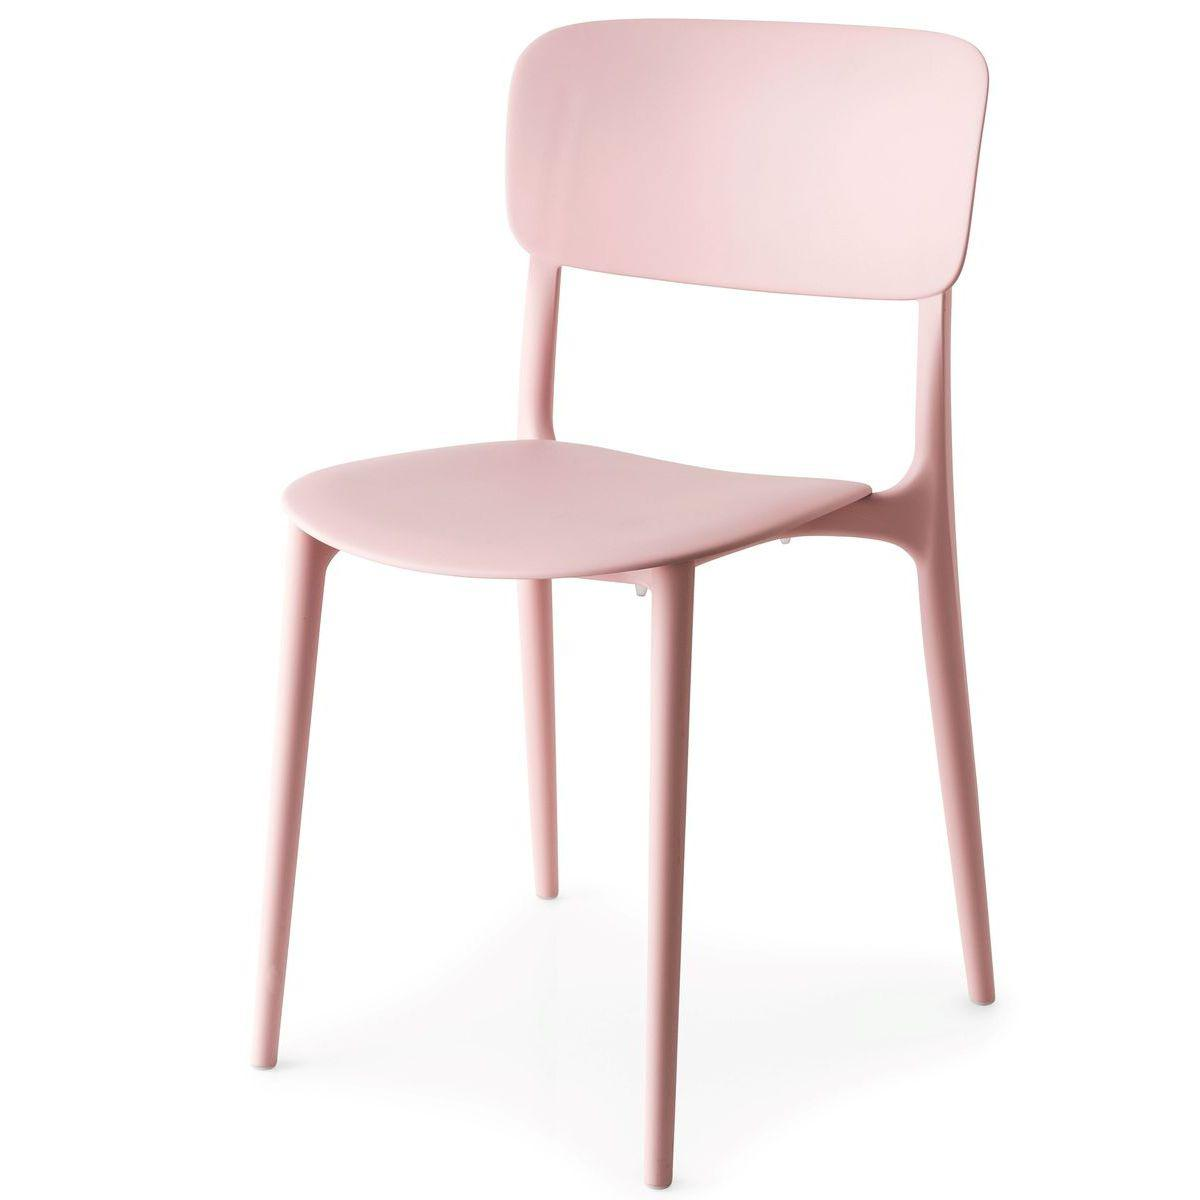 Chaise LIBERTY Calligaris rose poudre